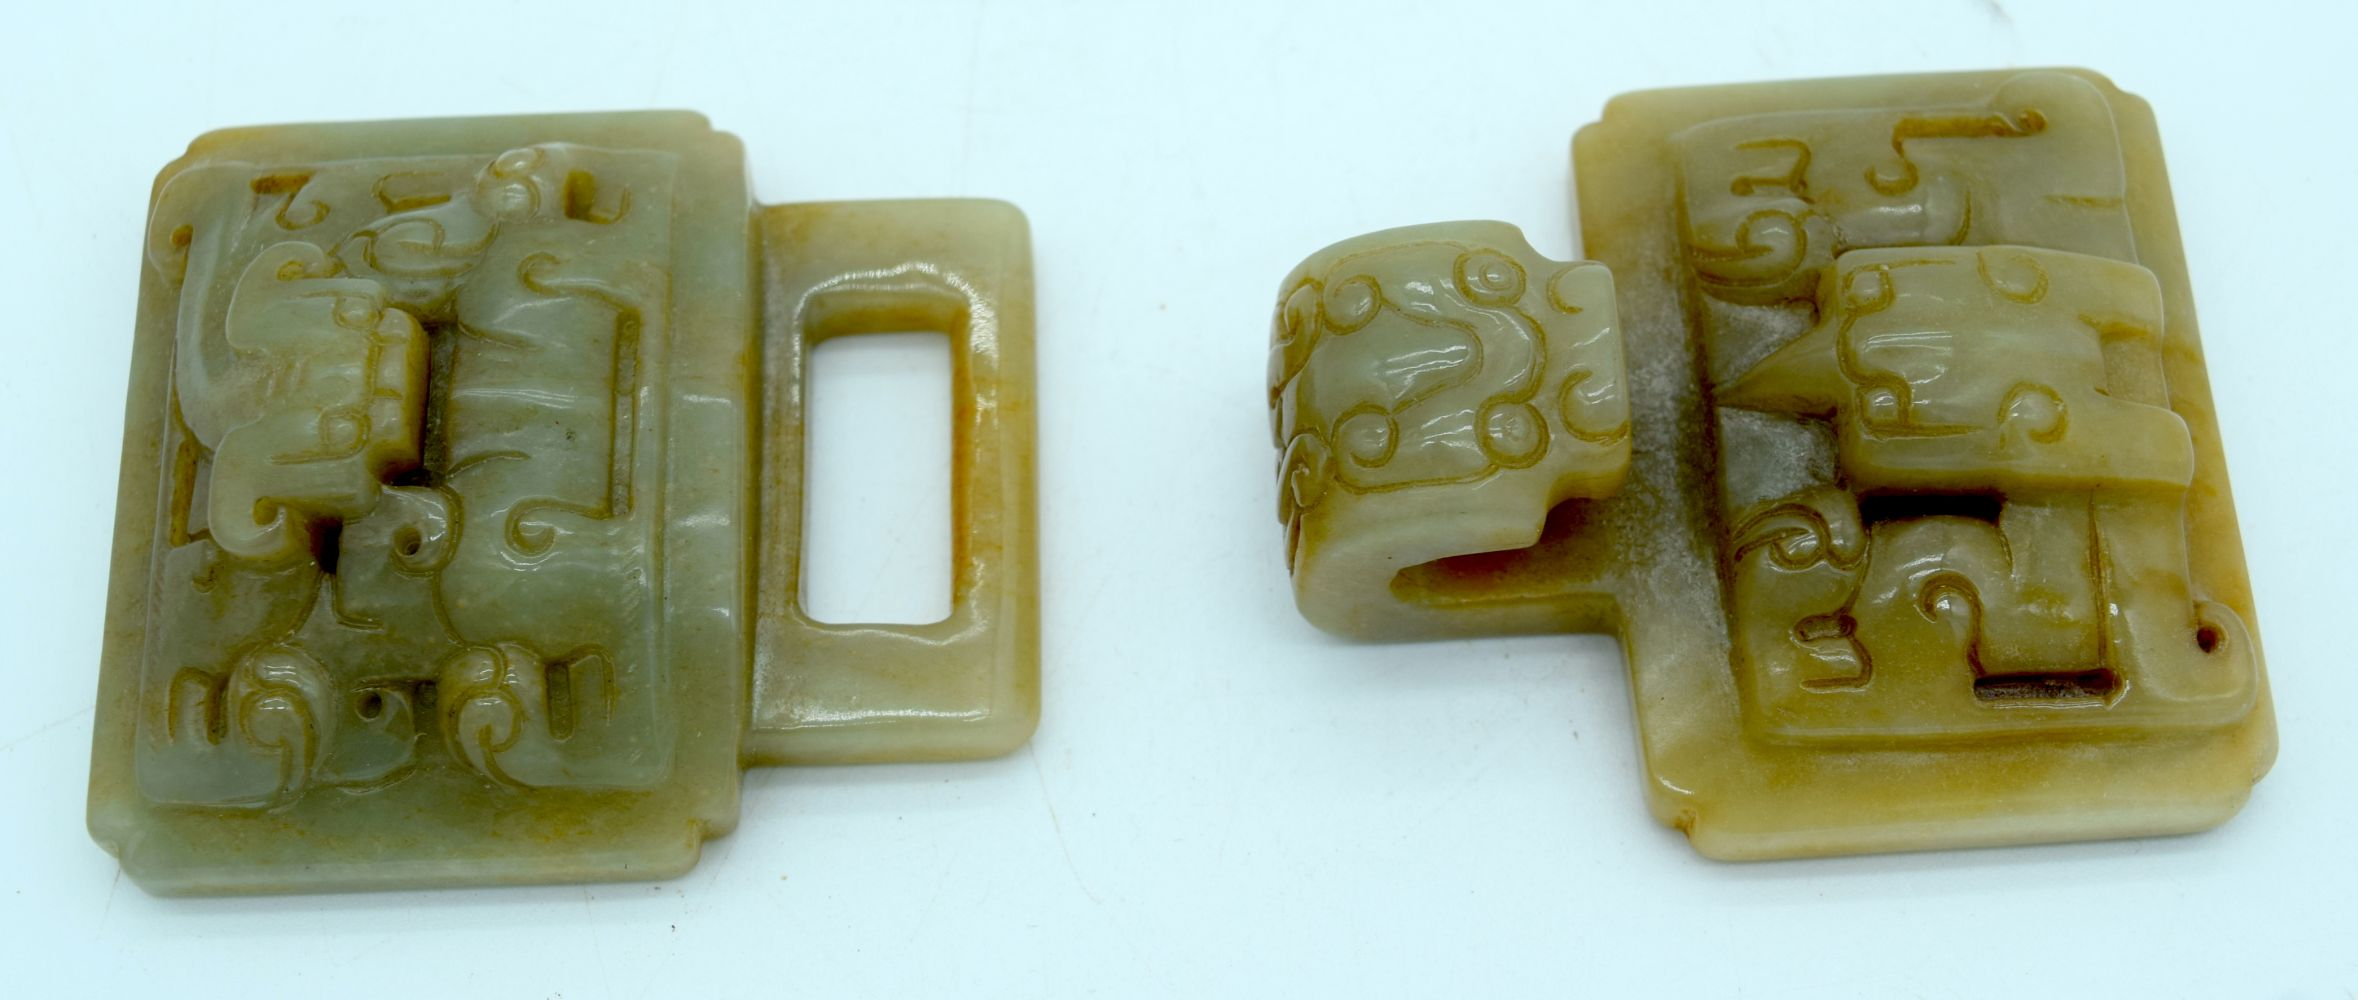 A Chinese Jade belt buckle 10 x 6.5cm. - Image 5 of 5